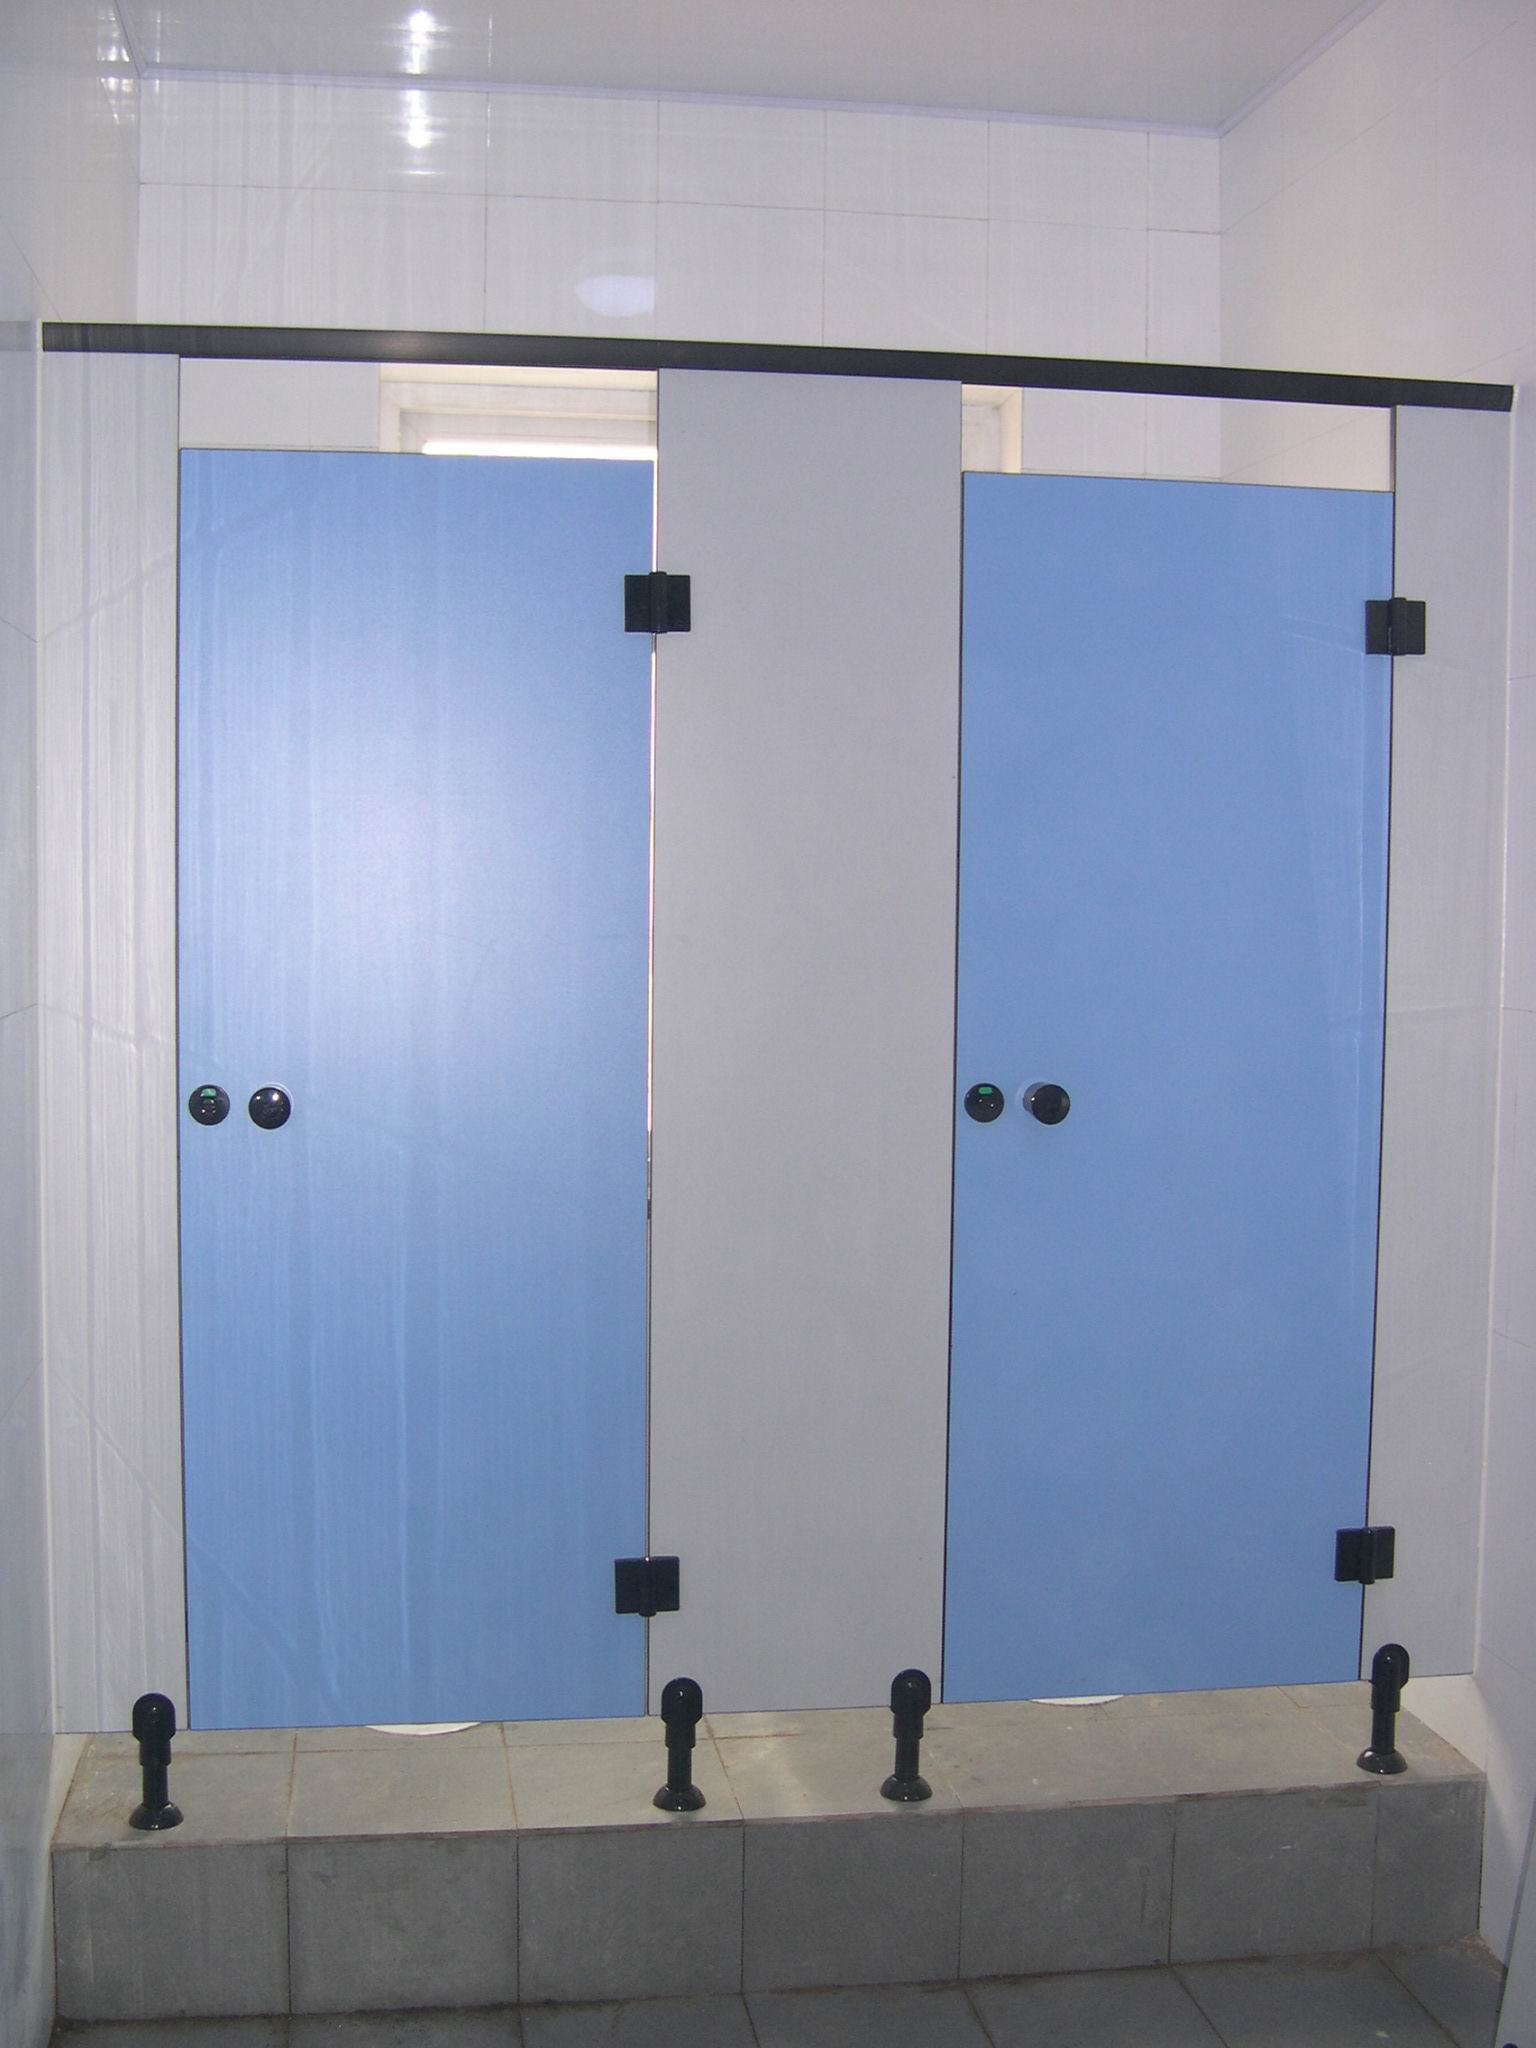 Rich-lees factory hpl laminate solid phenolic mould proof toilet cubicle partition